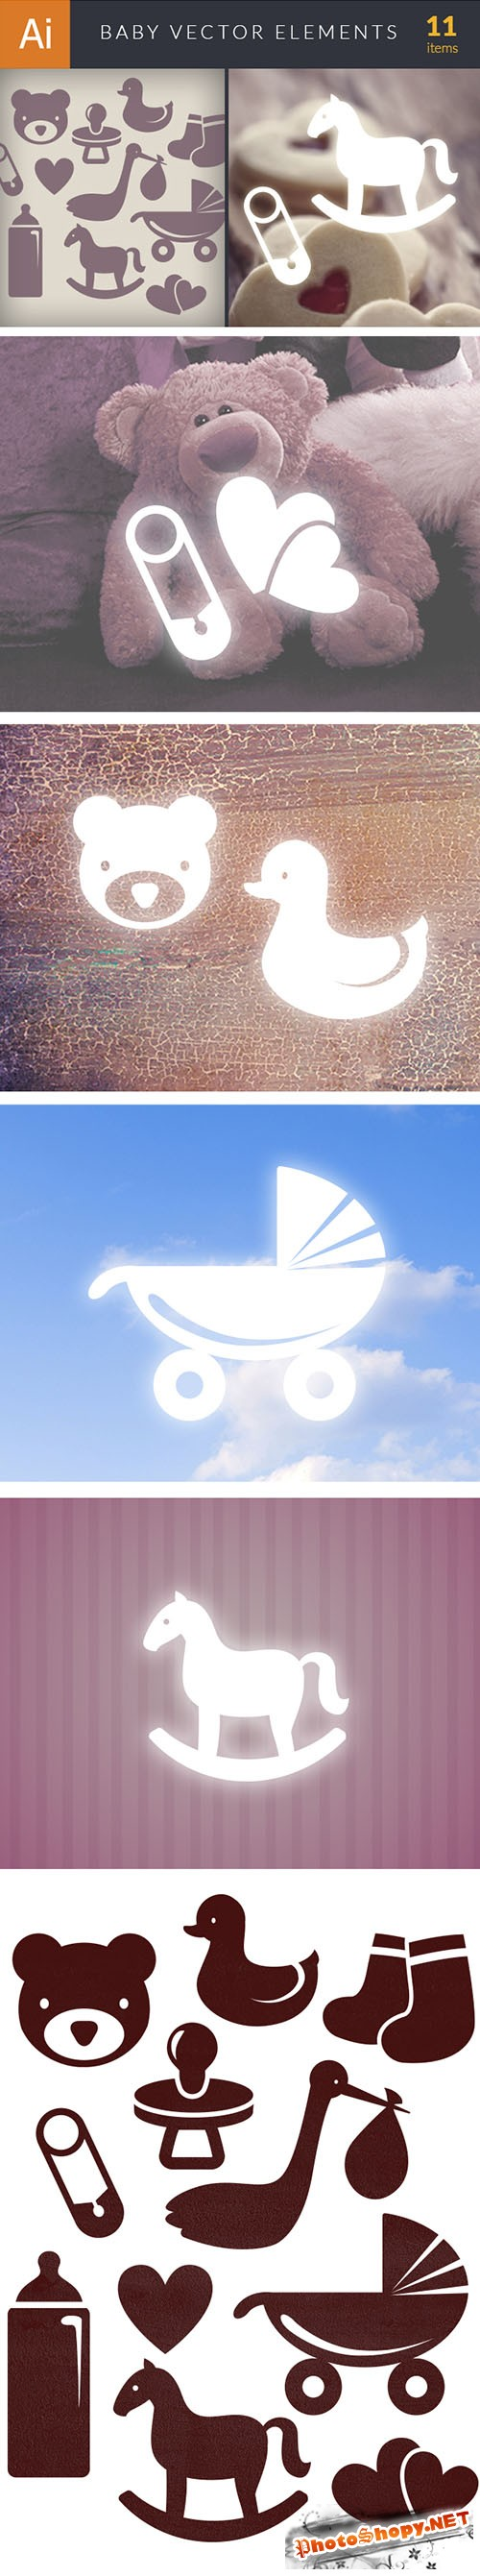 Simple Baby Elements Vector Illustrations Pack 1